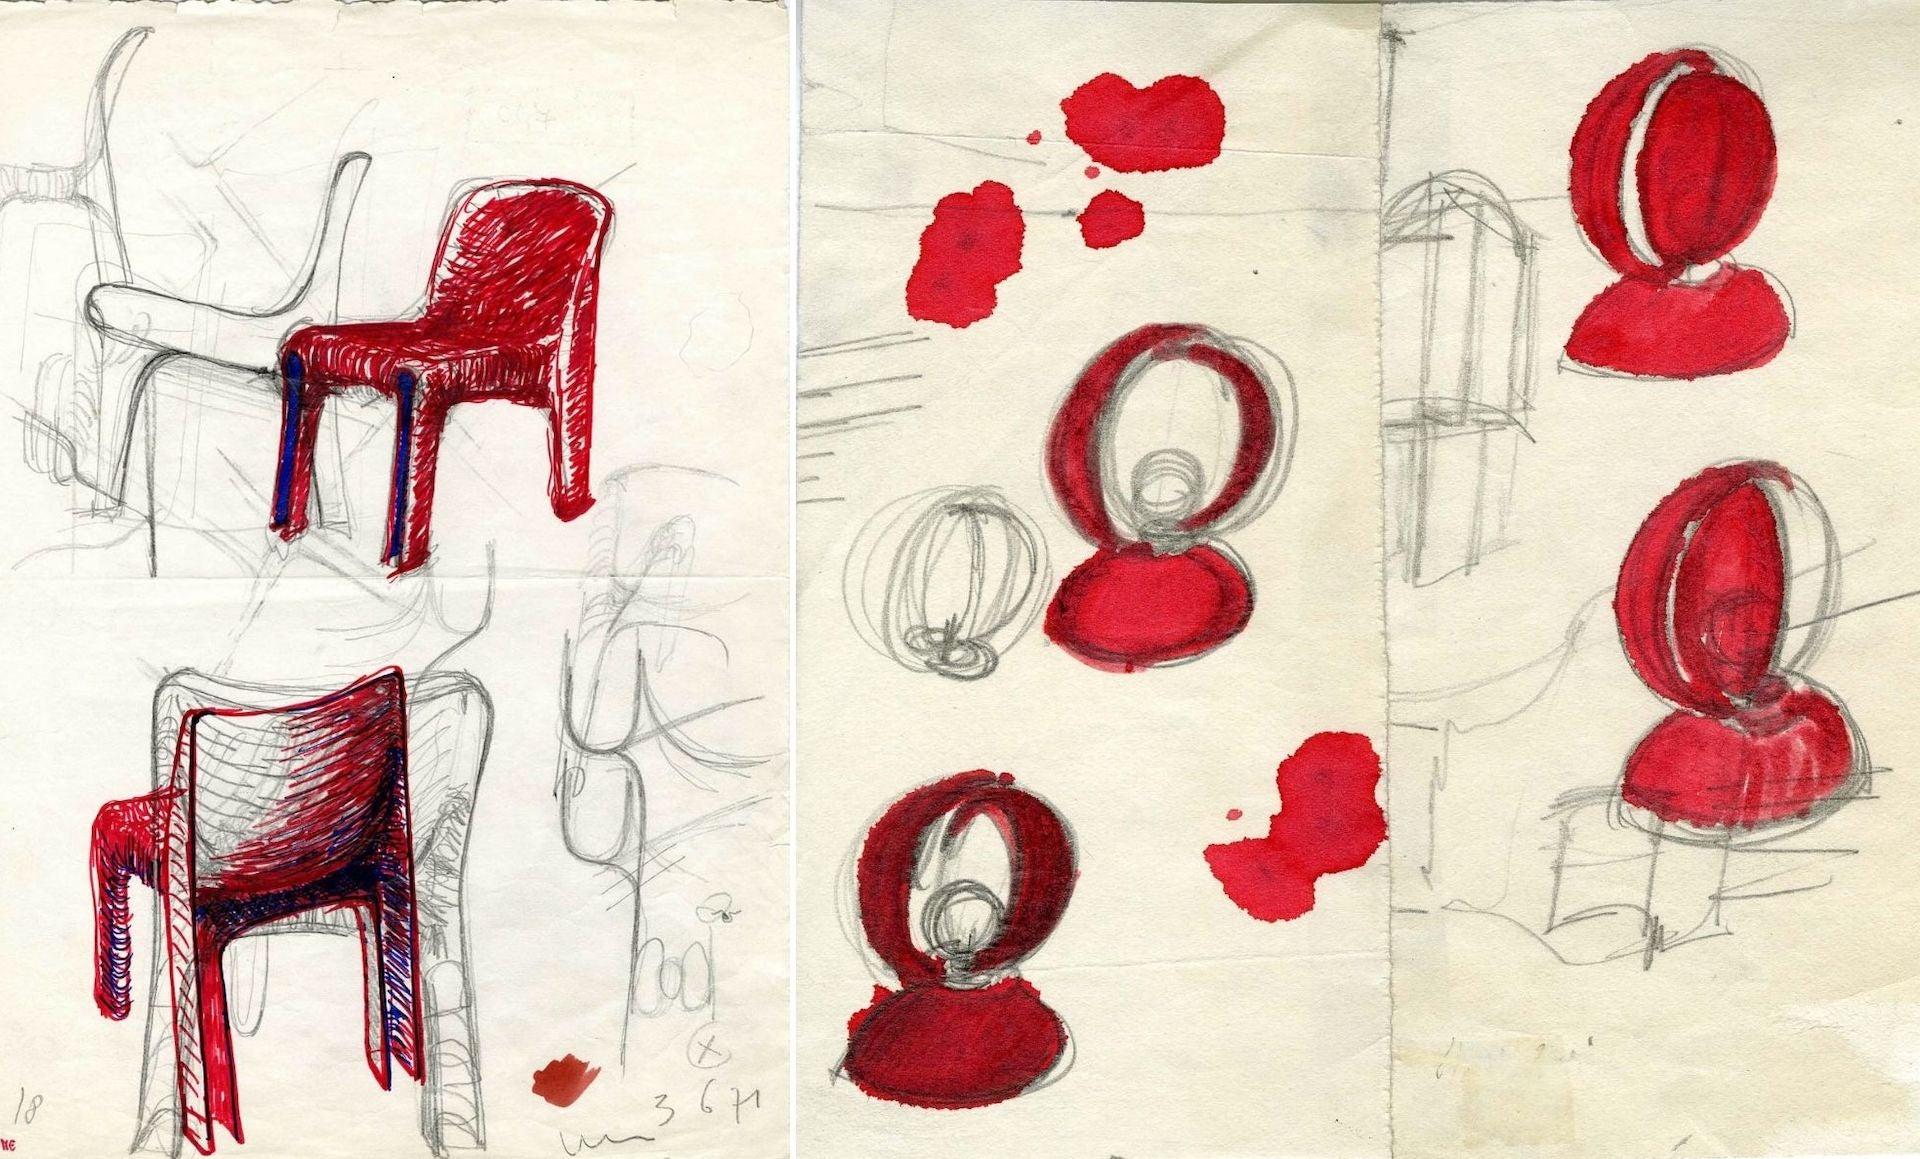 Vico Magistretti's sketches for two of his most iconic designs: the Selene Chair (1969) and Eclisse Lamp (1965), both produced by Artemide. Photos © Fondazione Studio Museo Vico Magistretti